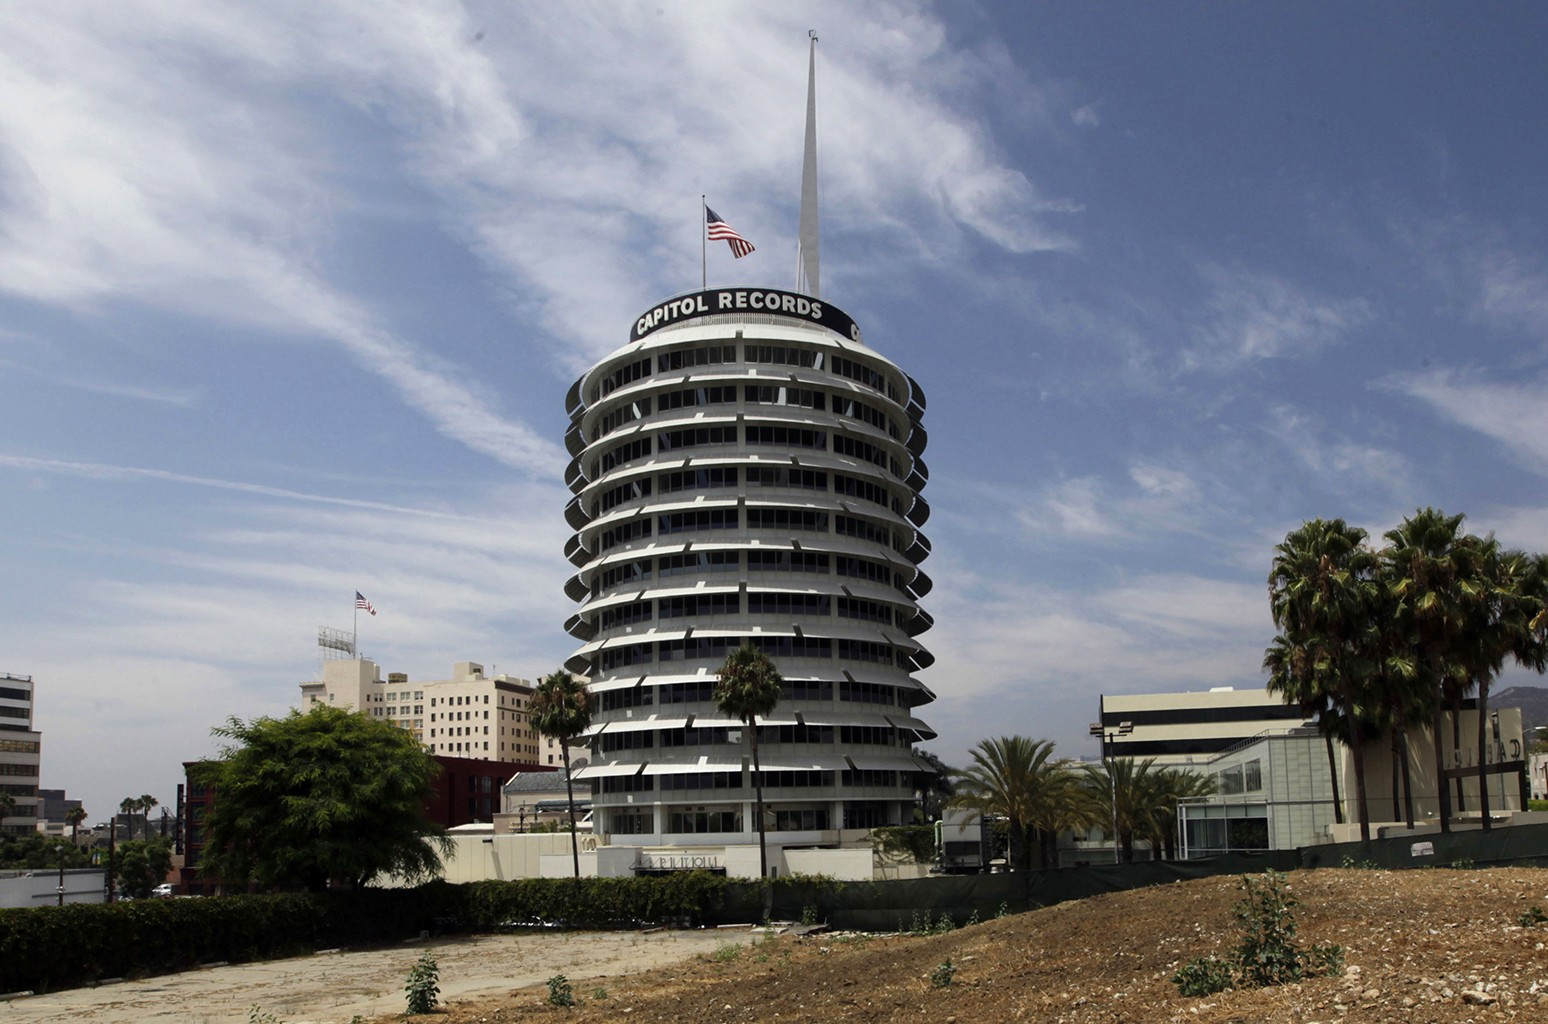 The Capitol Records building in Los Angeles.